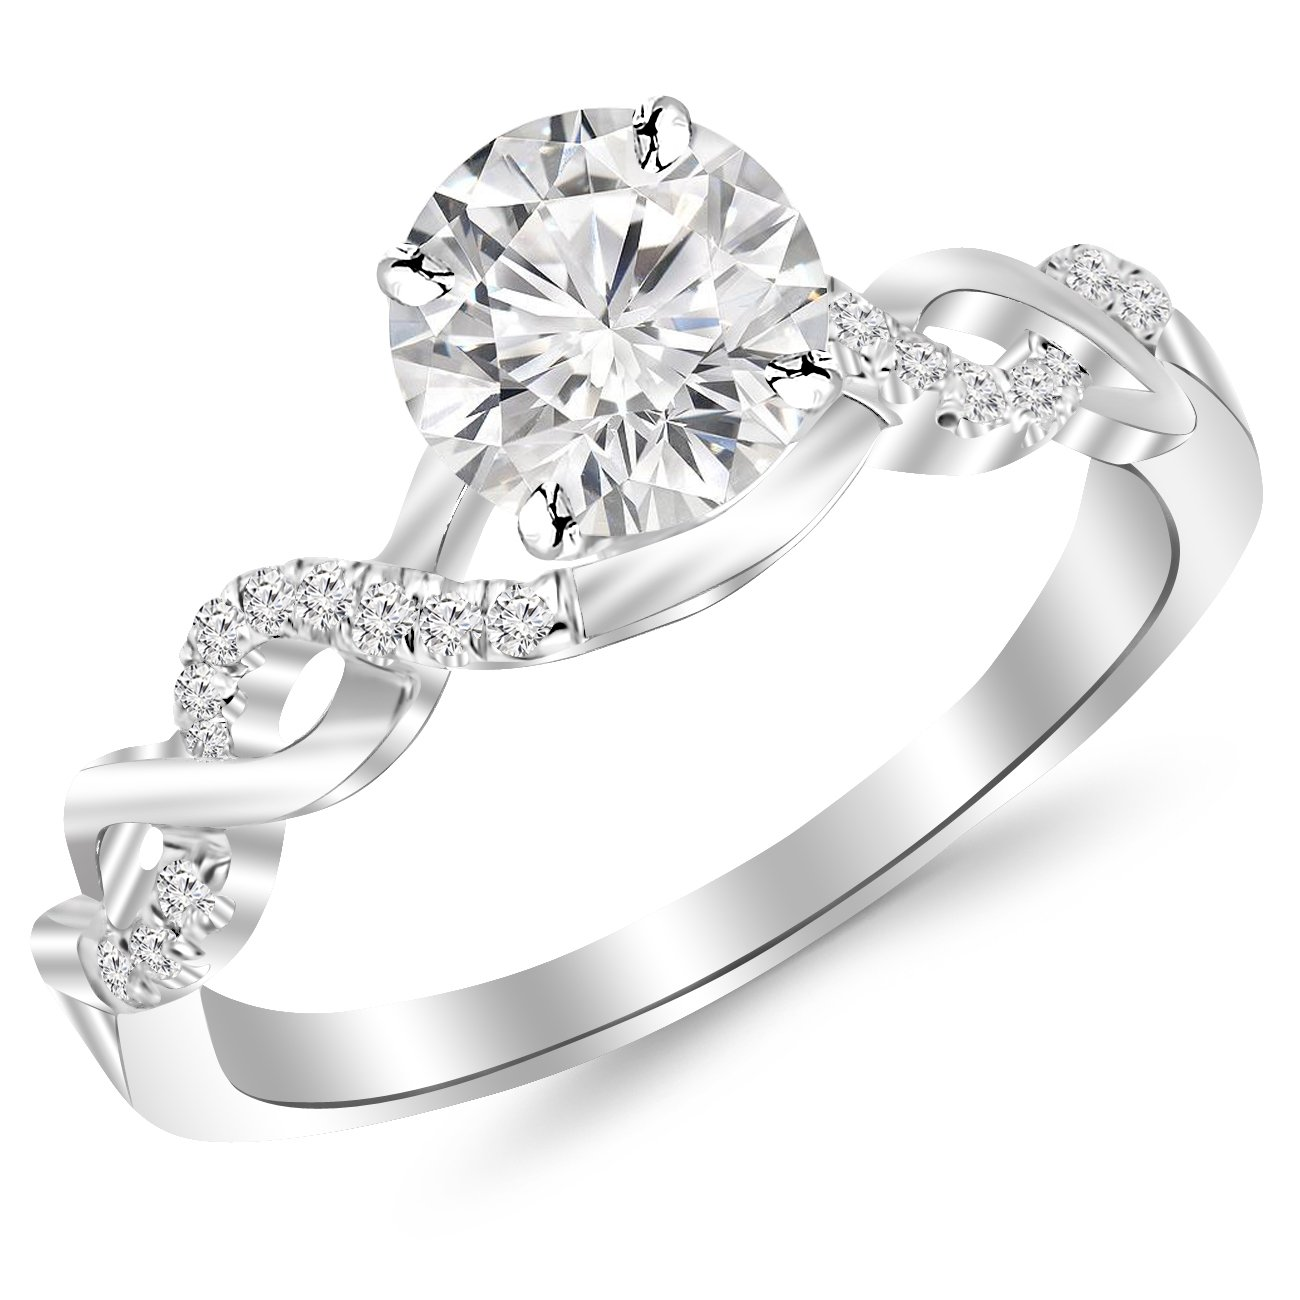 new you help com obniiis inspiration dimand wedding diamond find jewelry rings to